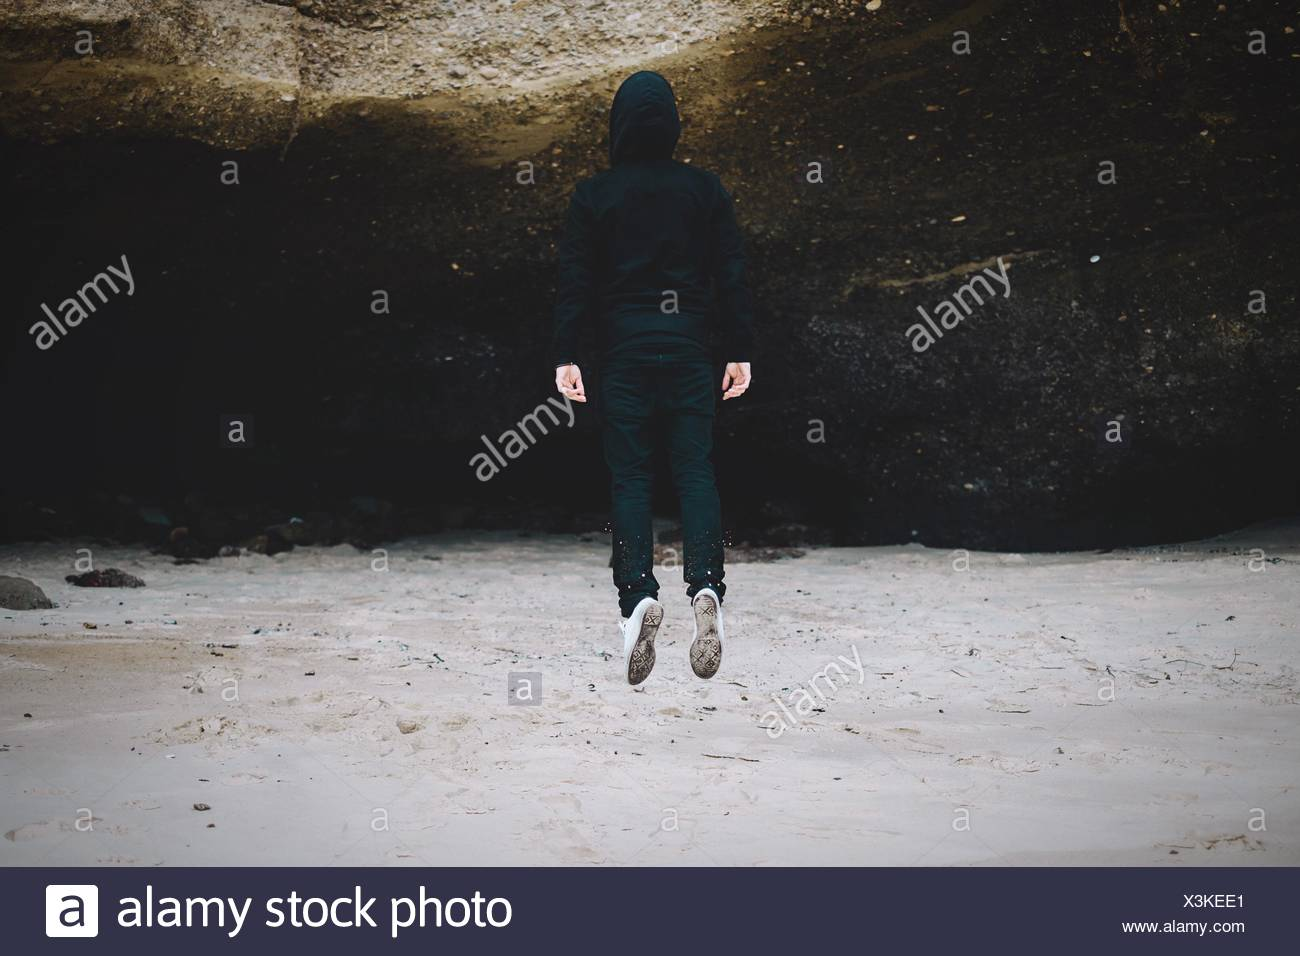 Rear View Of A Woman Jumping On Landscape - Stock Image